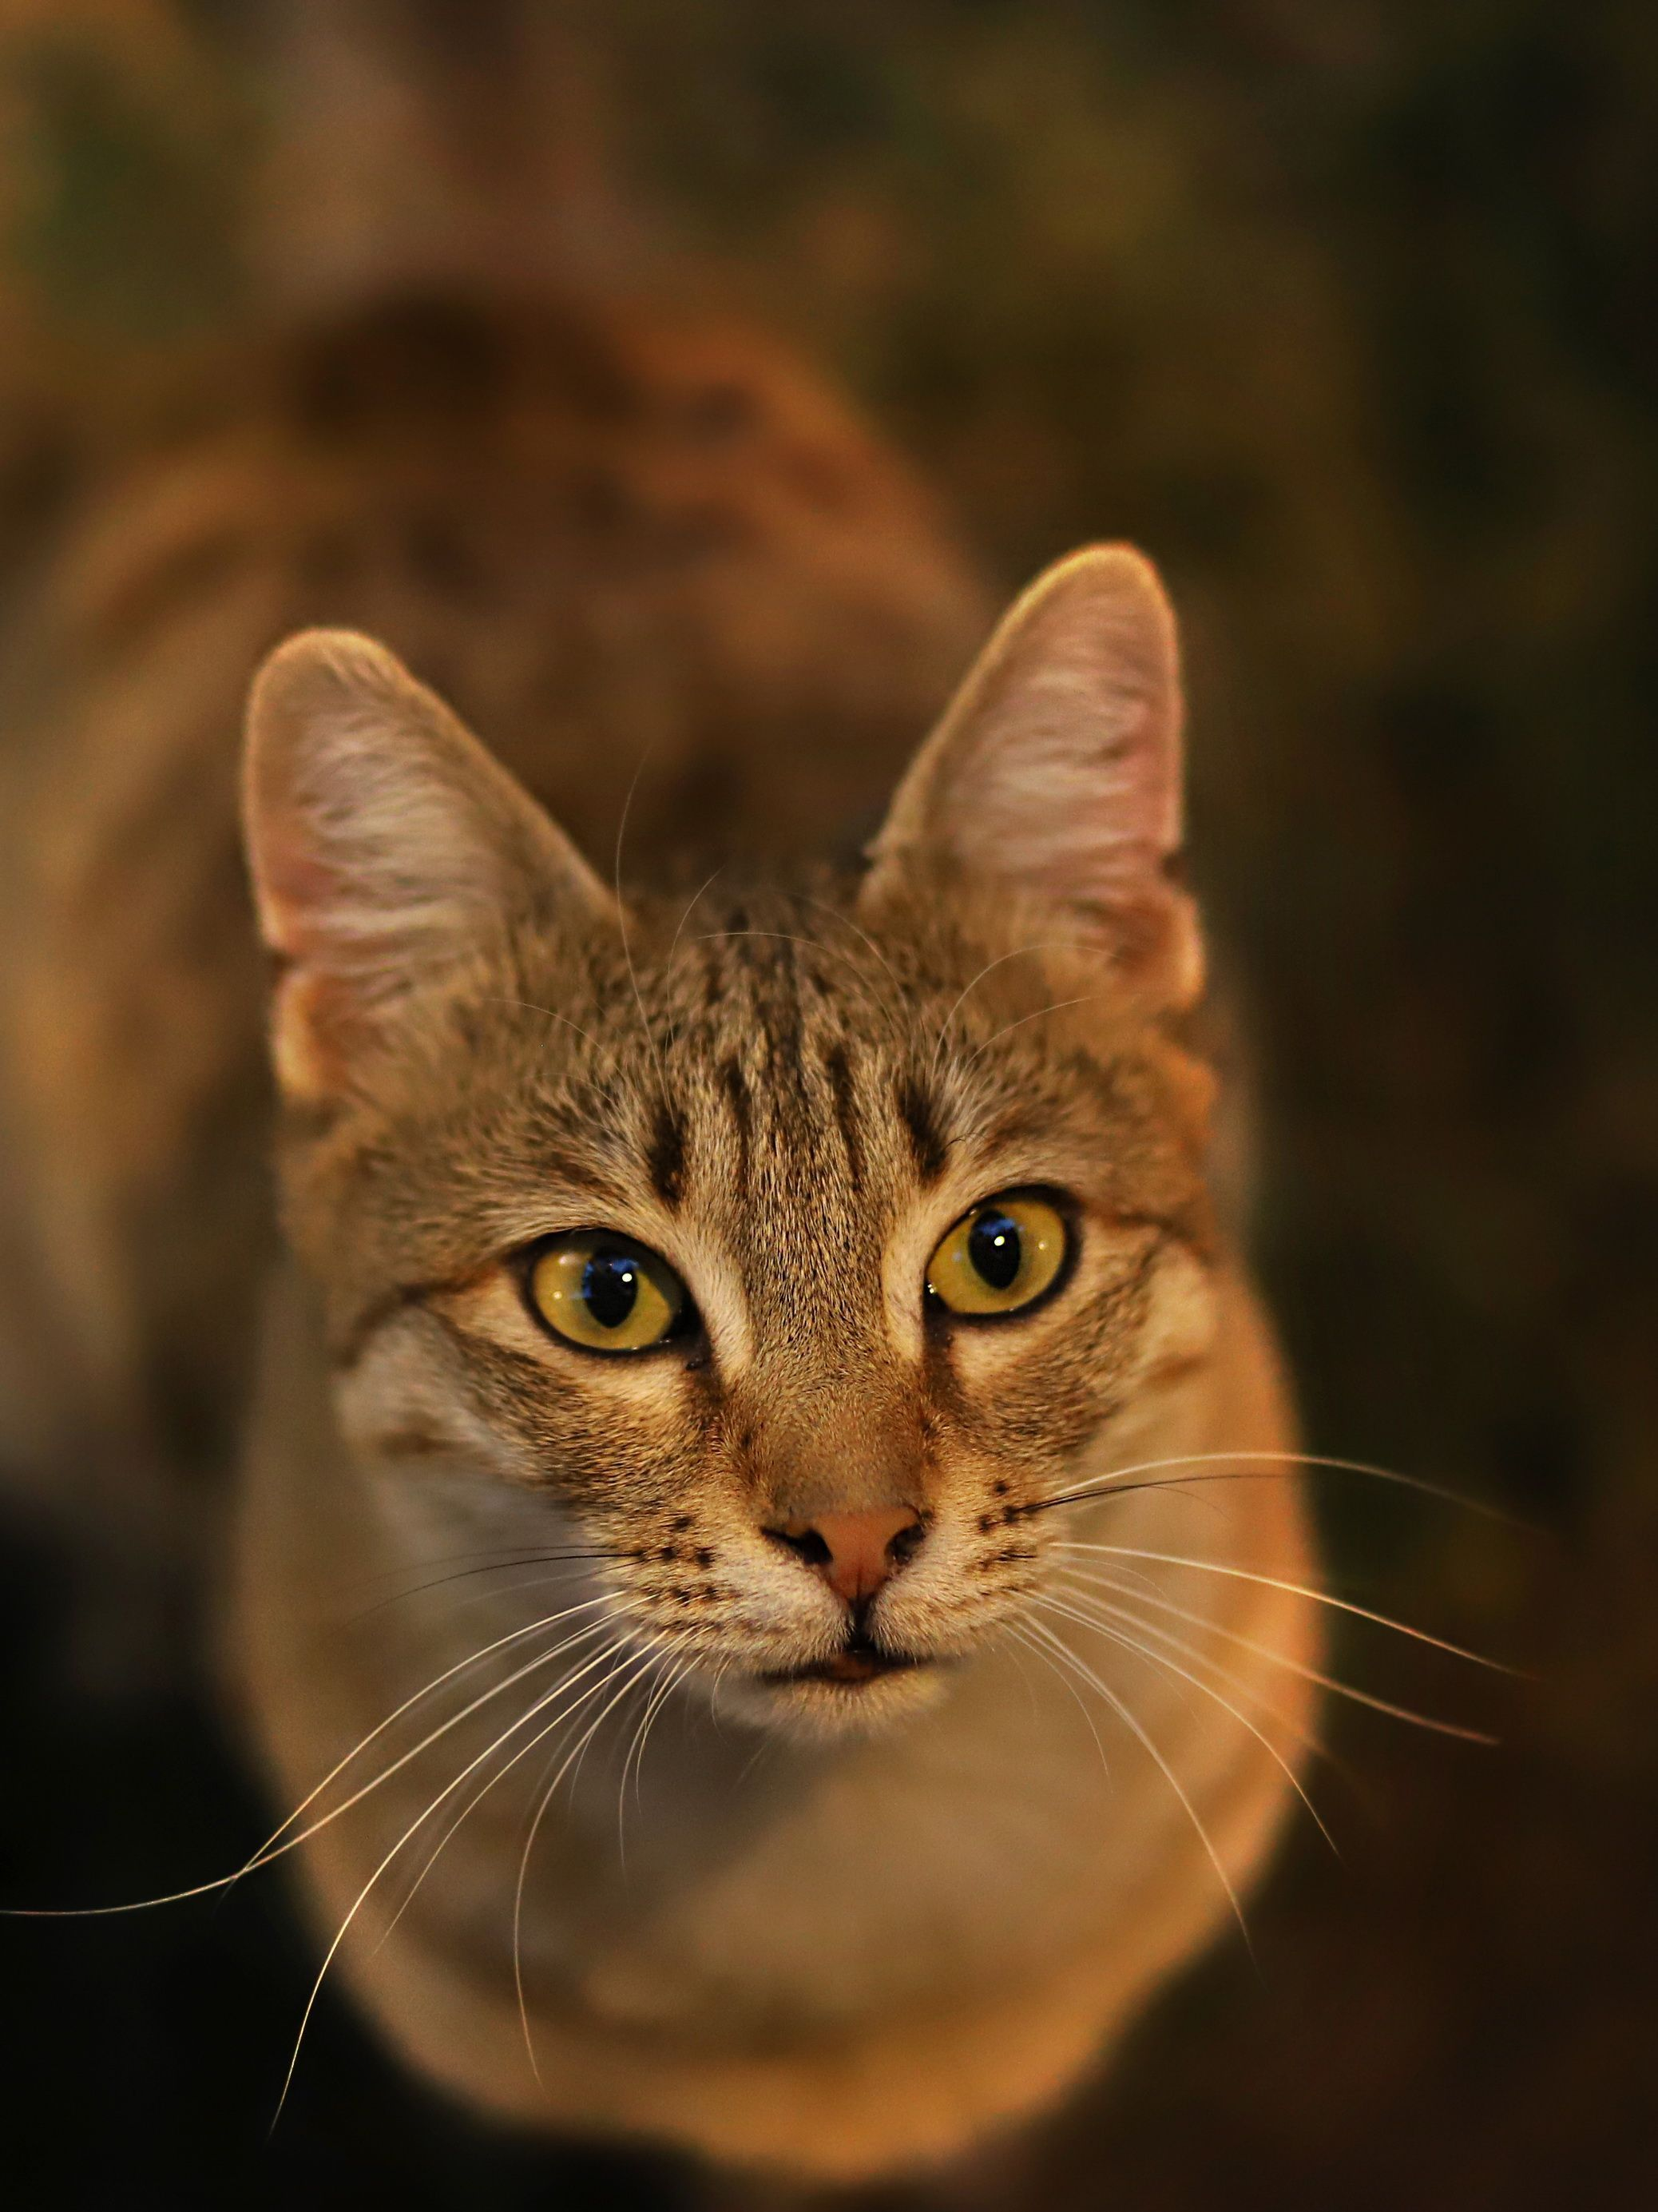 Tabby Cats Gallery Cats, Orange tabby cats, Beautiful cats